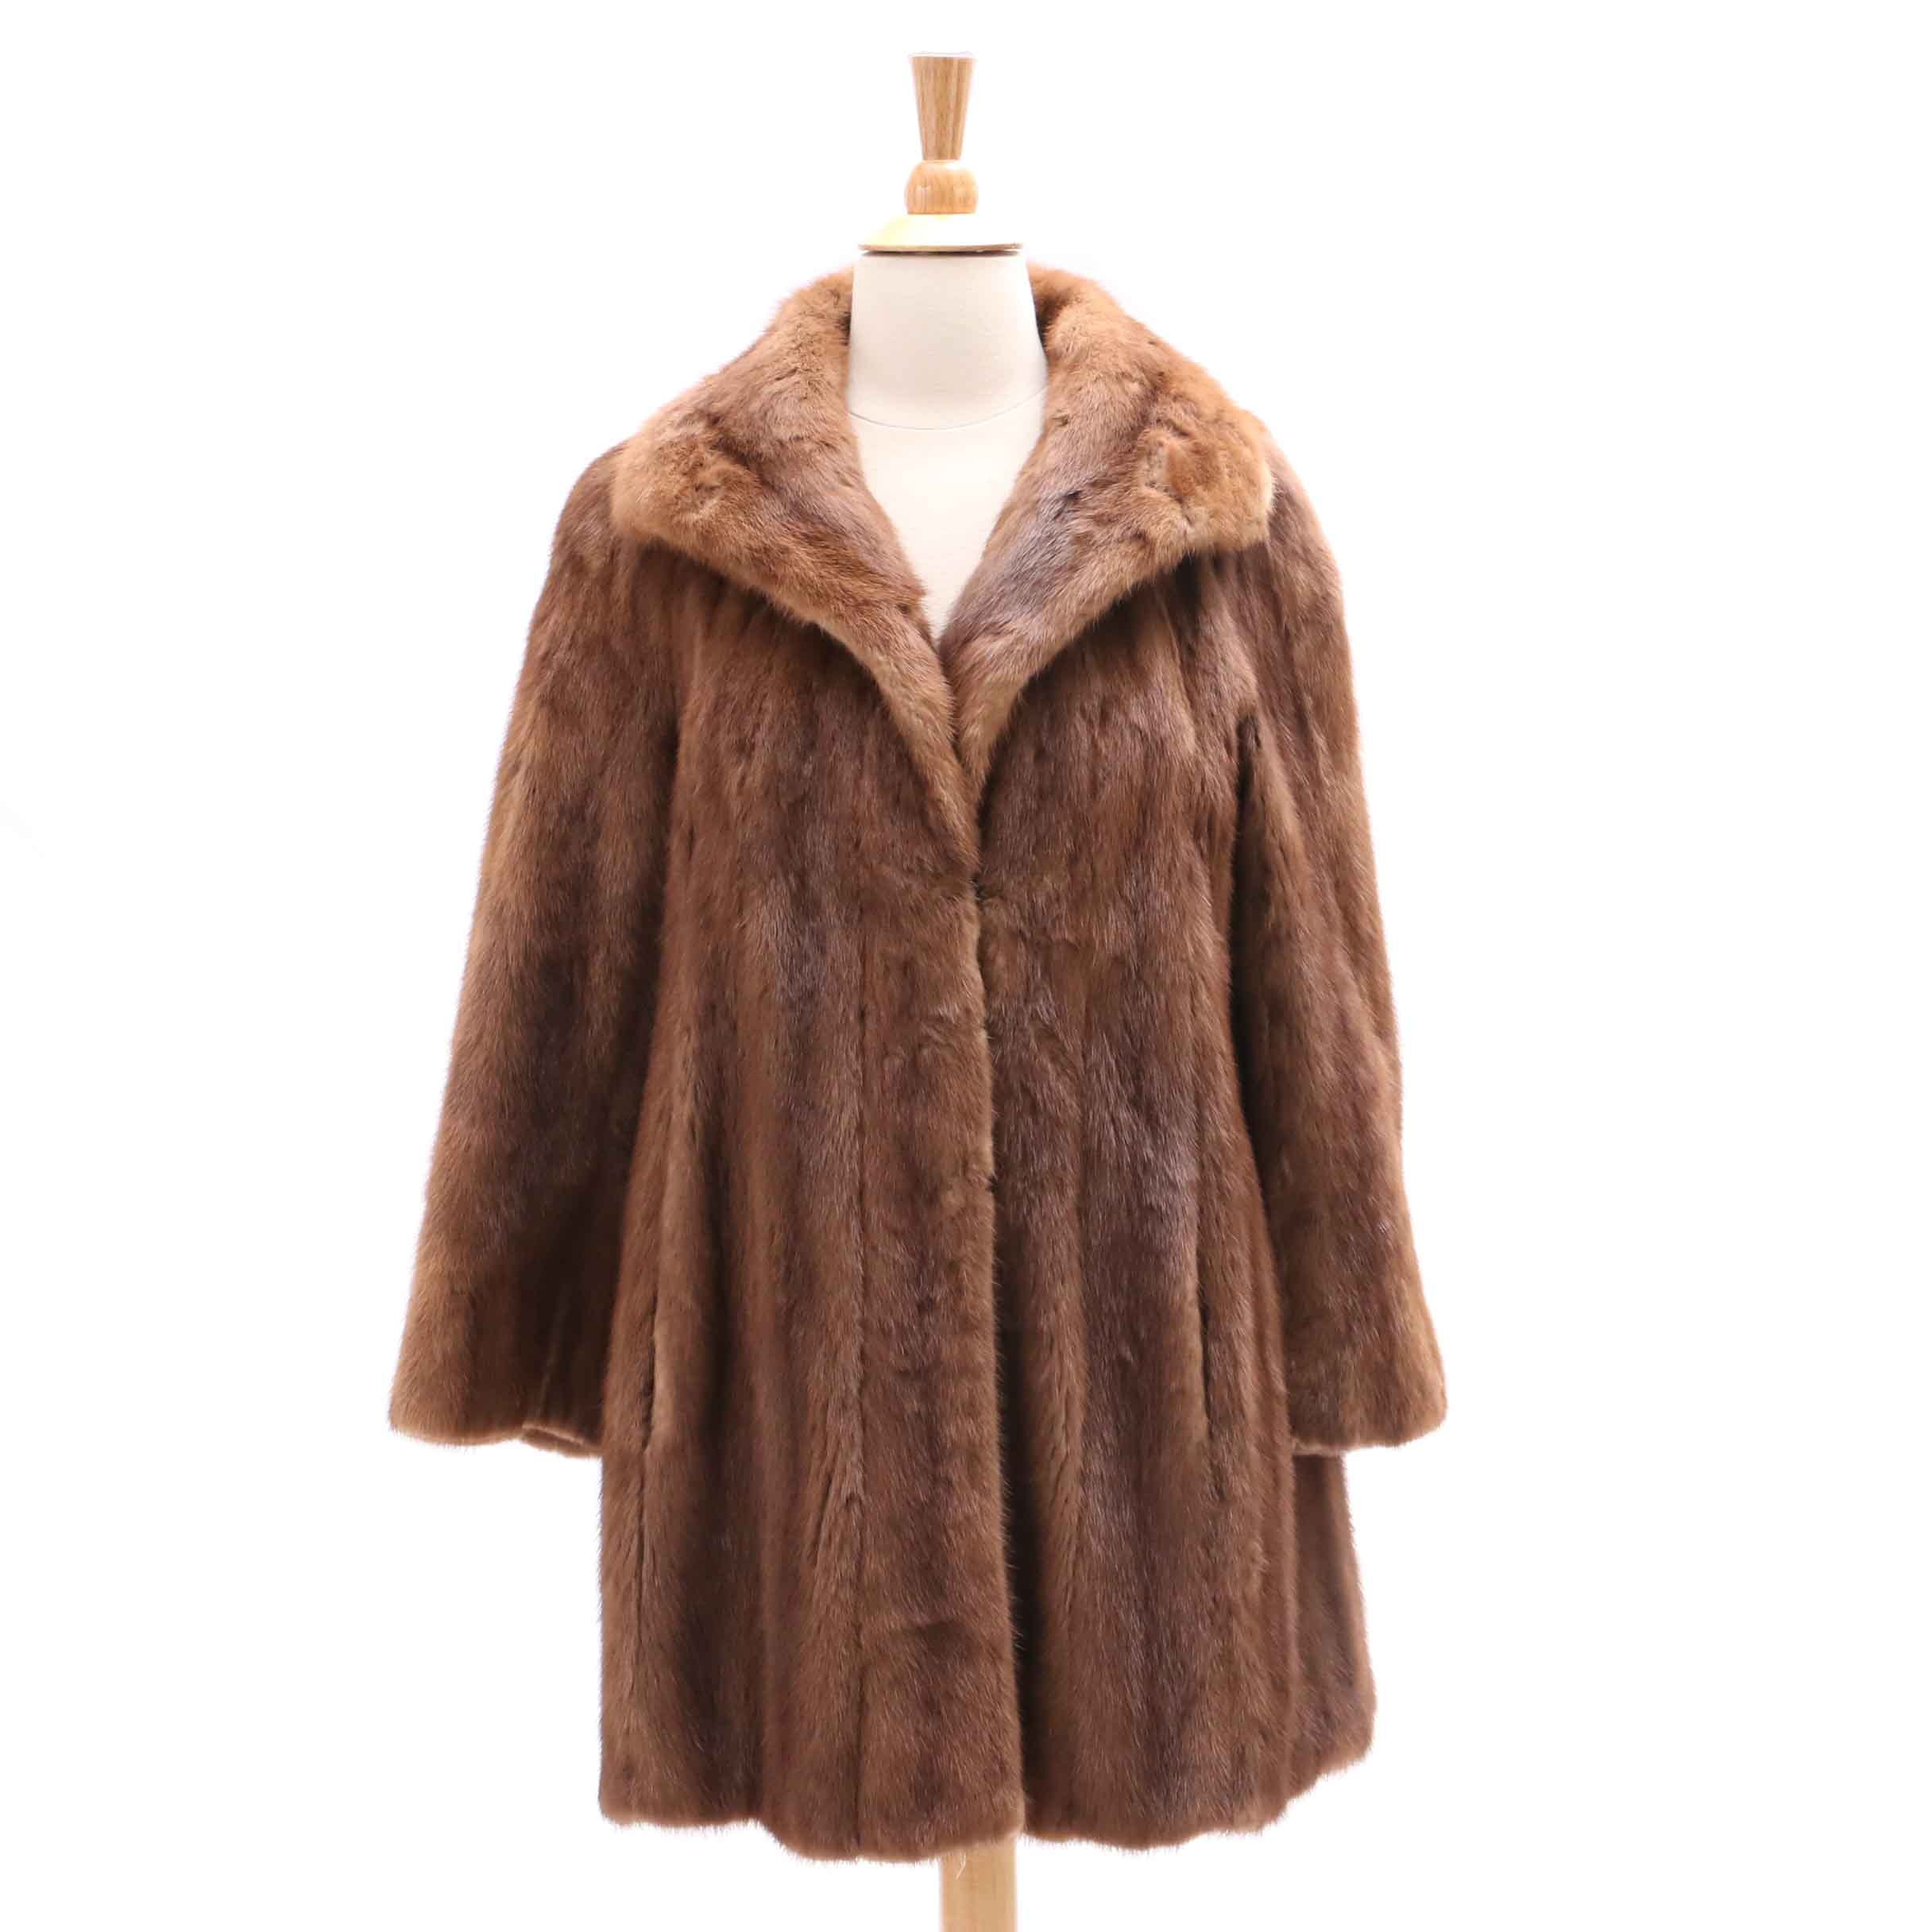 Women's Vintage John Anthony Mink Fur Coat from Garfinckel's